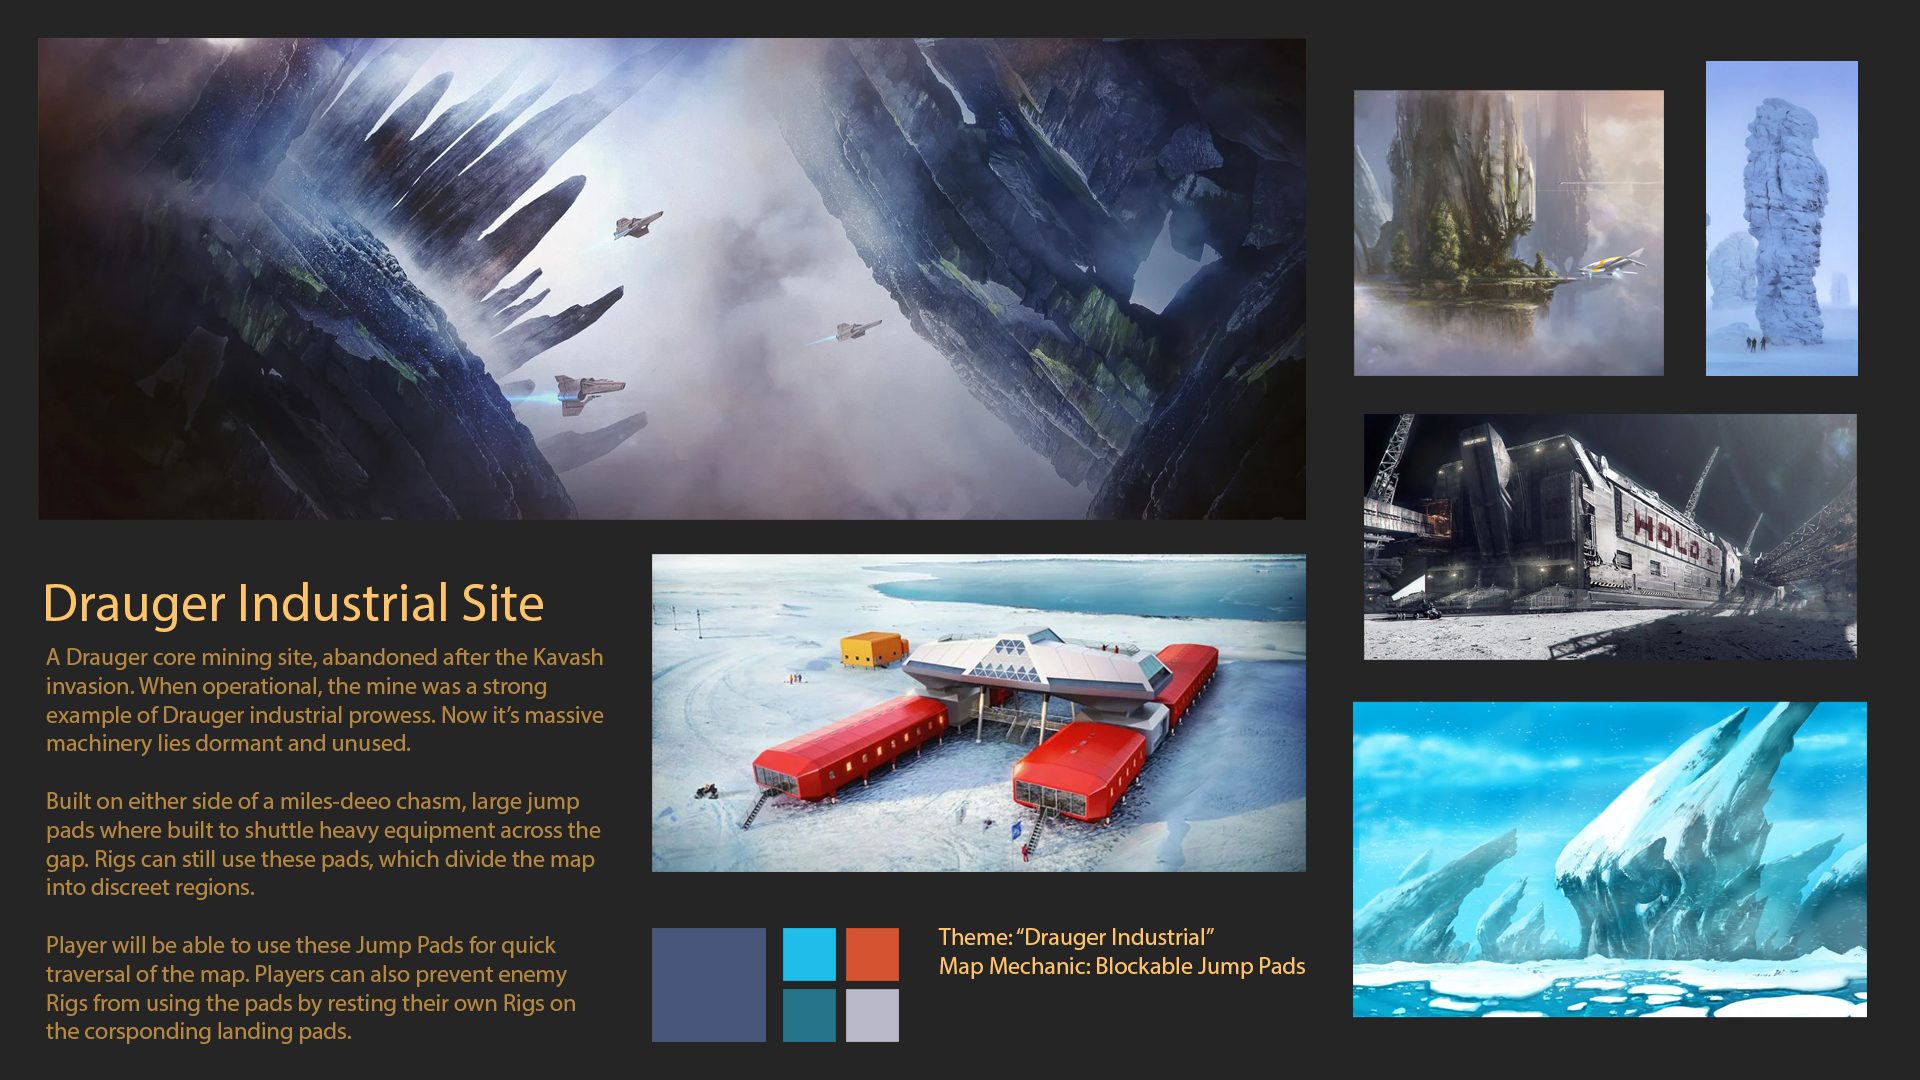 reference_collage_-_drauger_industrial_site.jpg